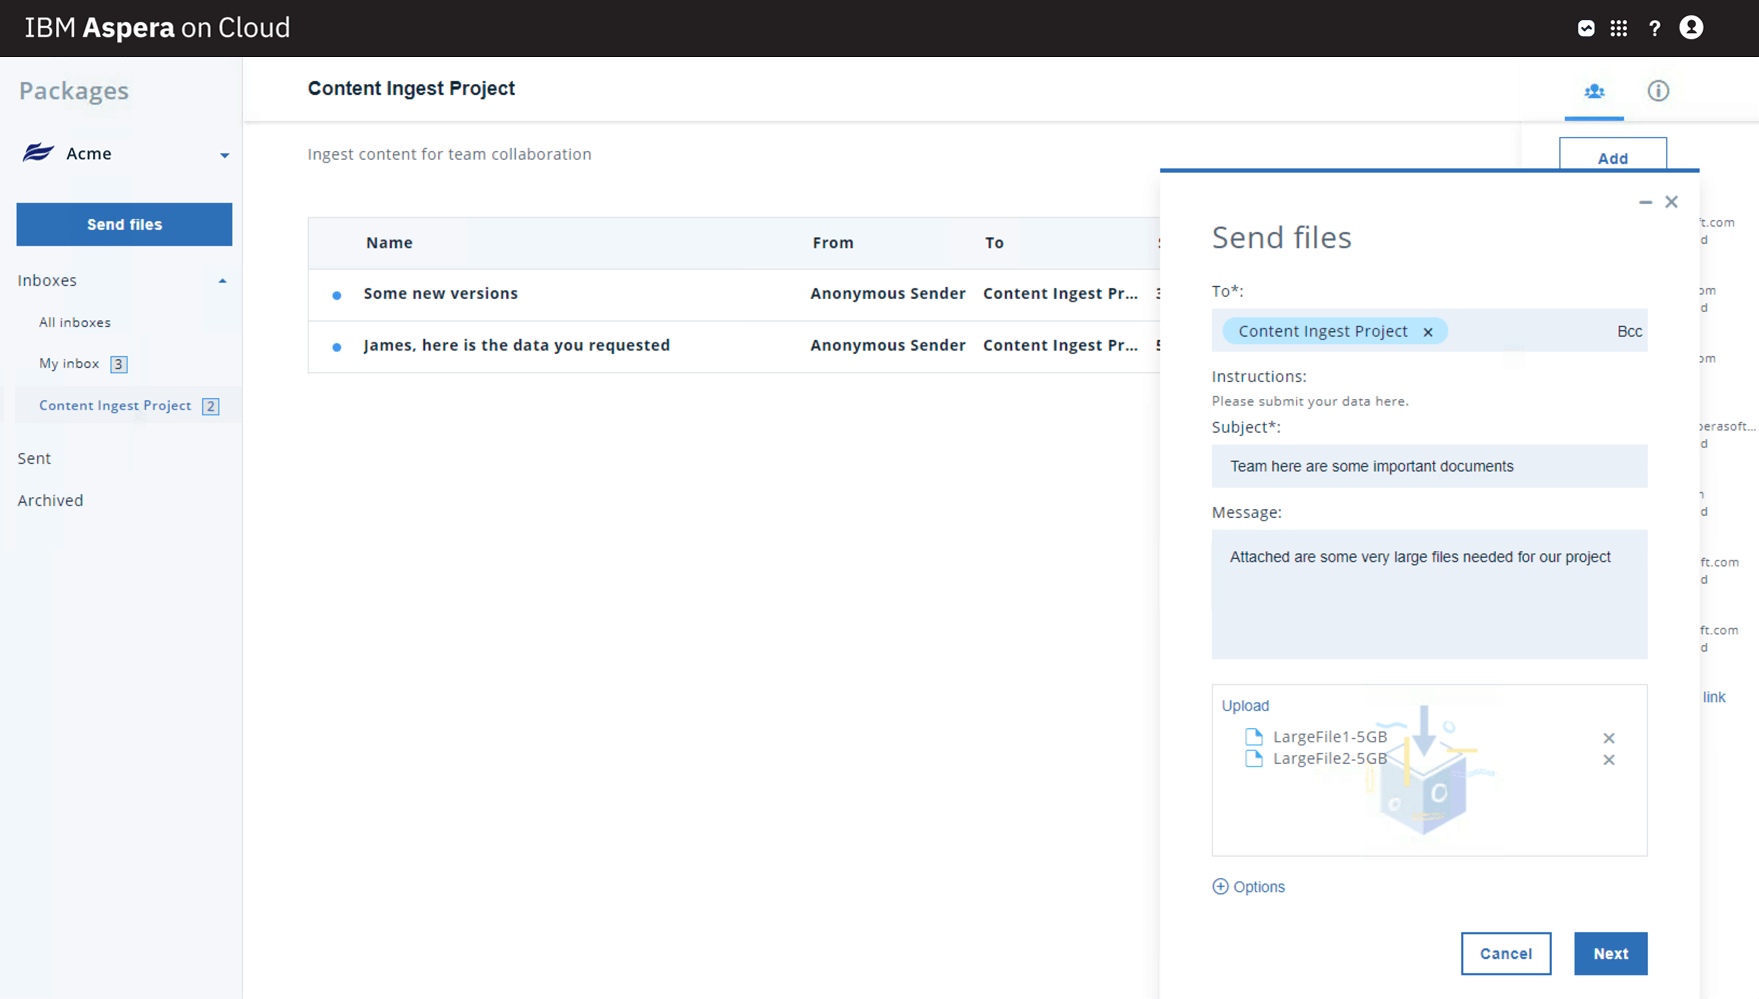 Screenshot showing product UI ability to send packages of files to a shared inbox dropbox